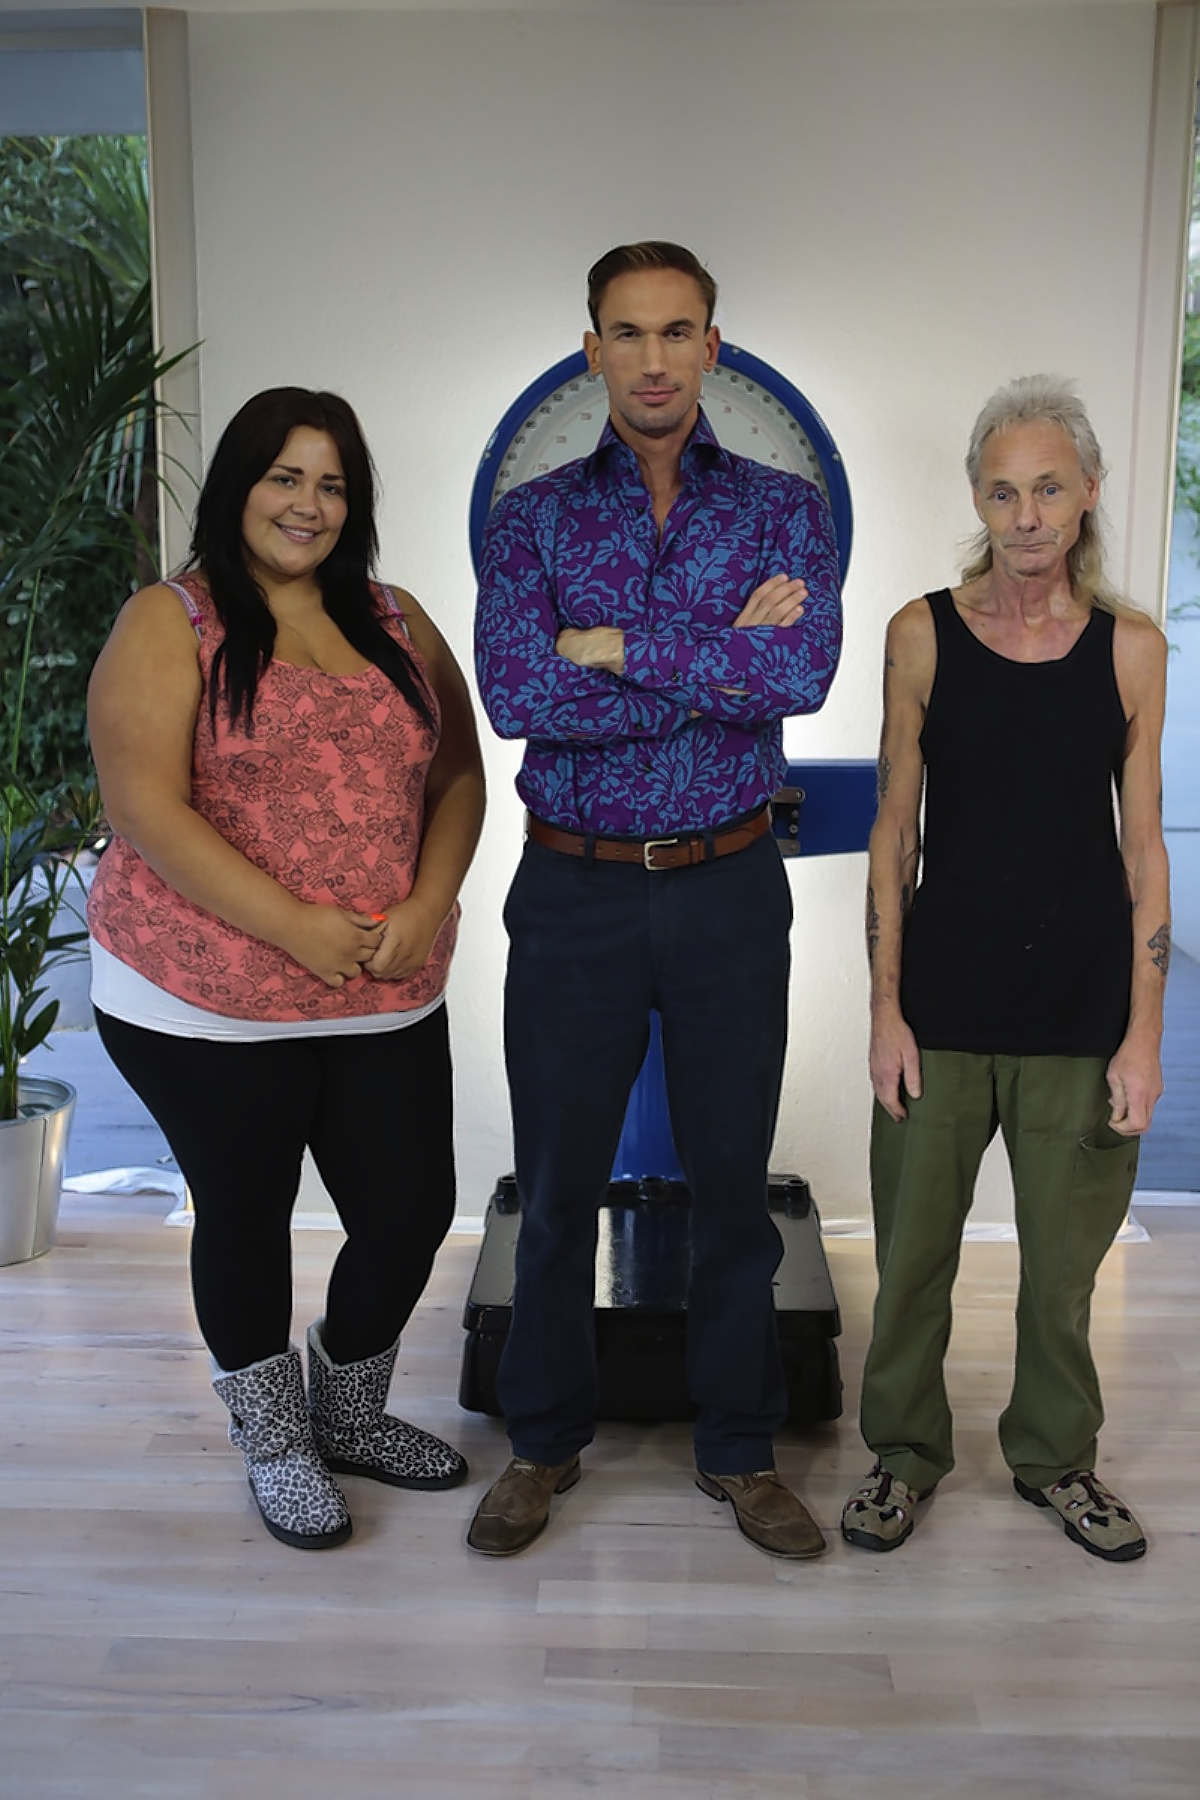 Charlene Shattock, Dr Christian Jessen and